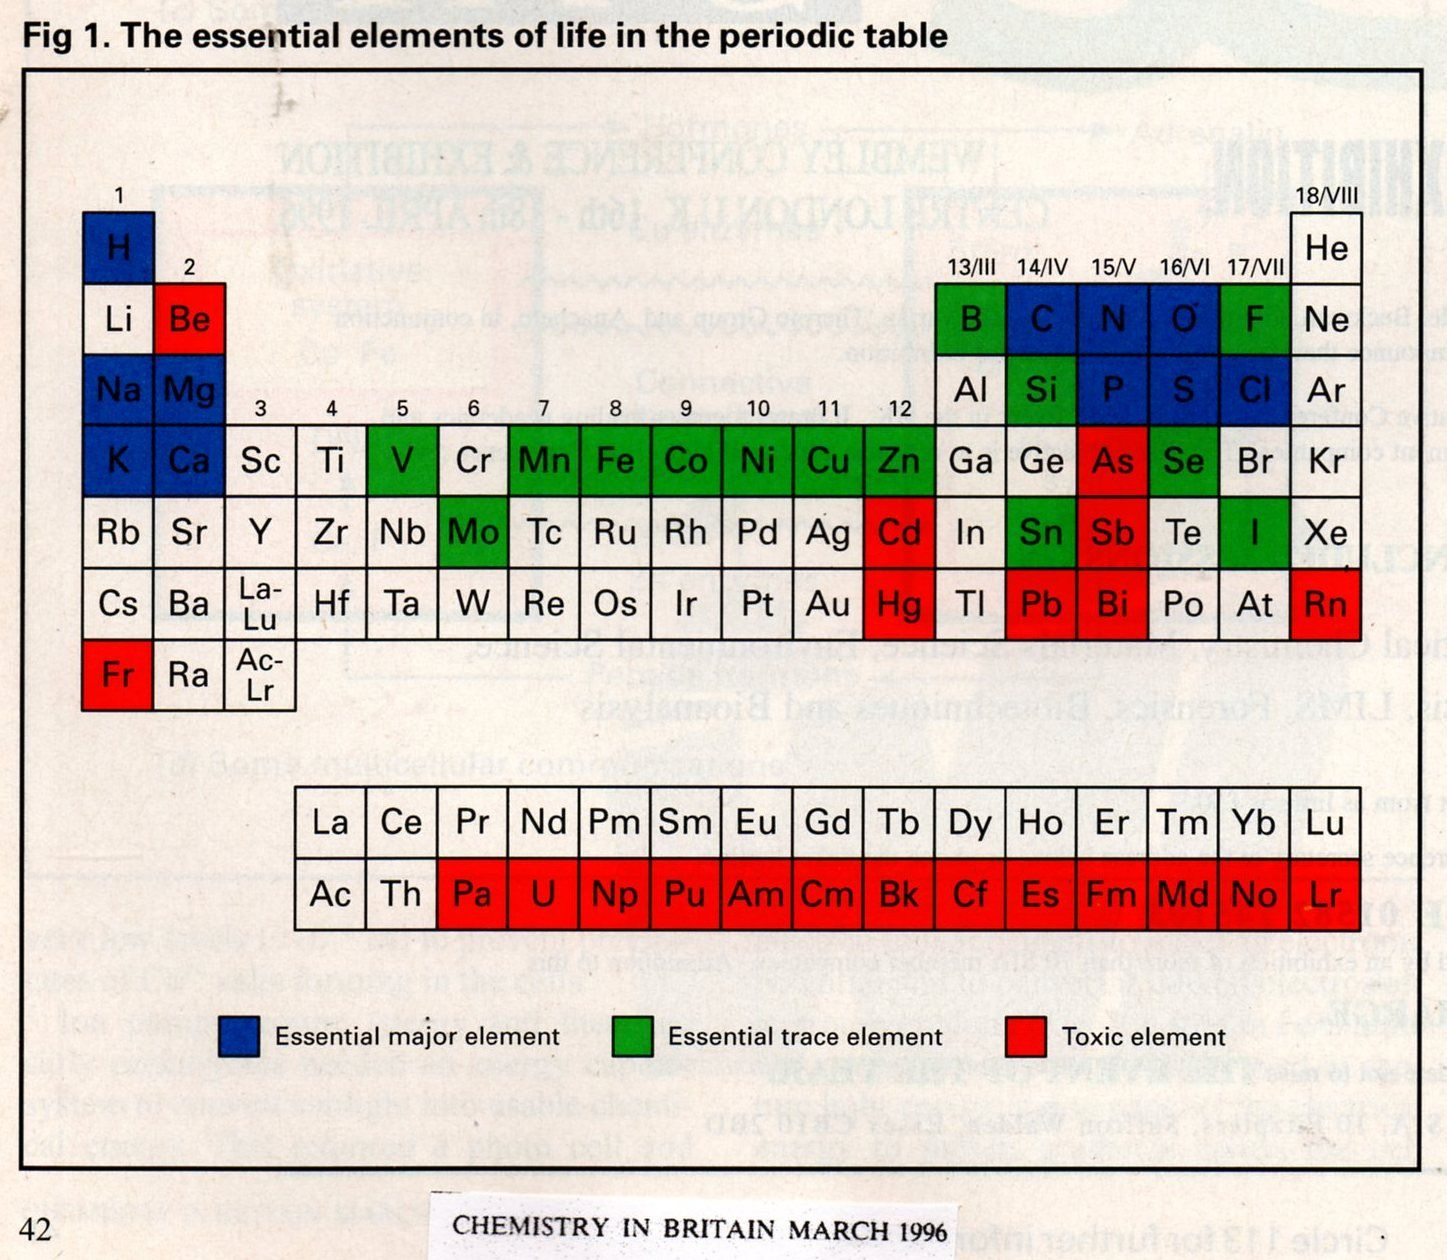 Periodic Table Showing Elements Which Have An Effect On